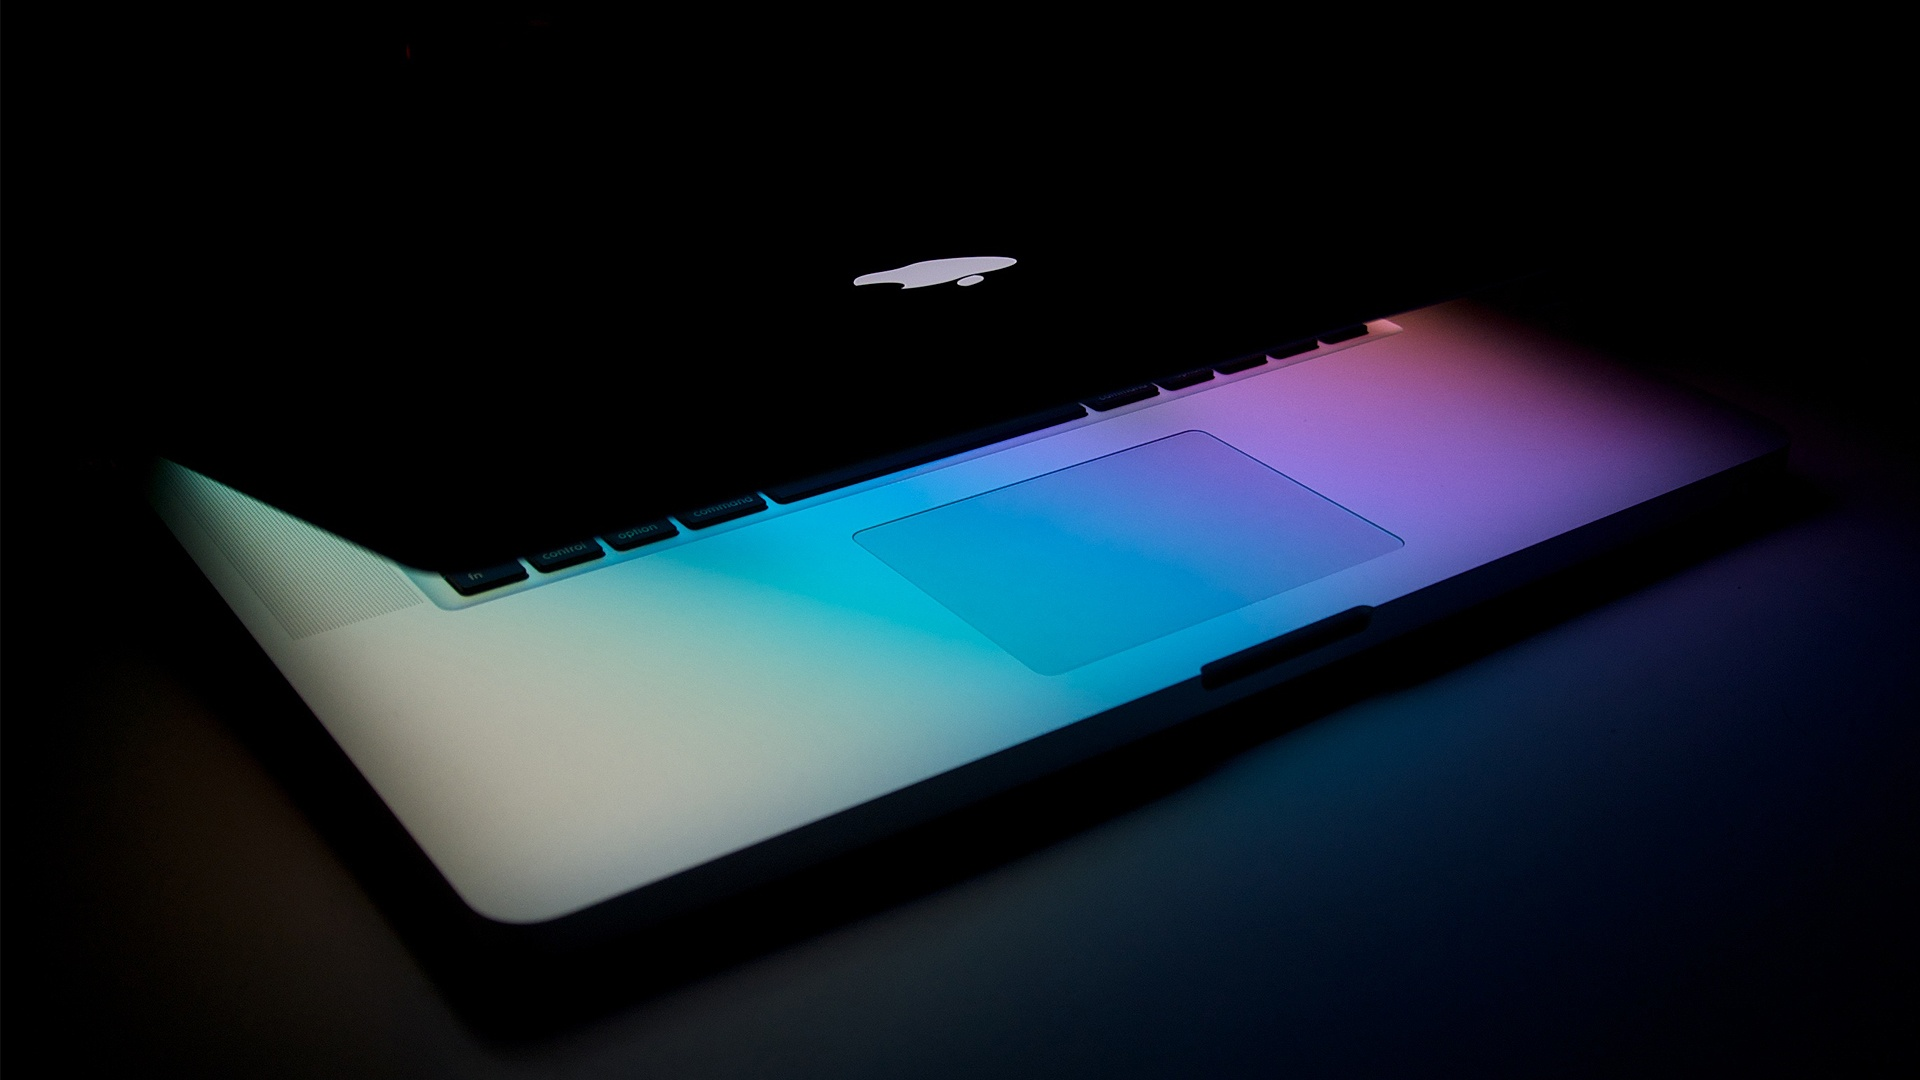 Macbook Animated Wallpaper